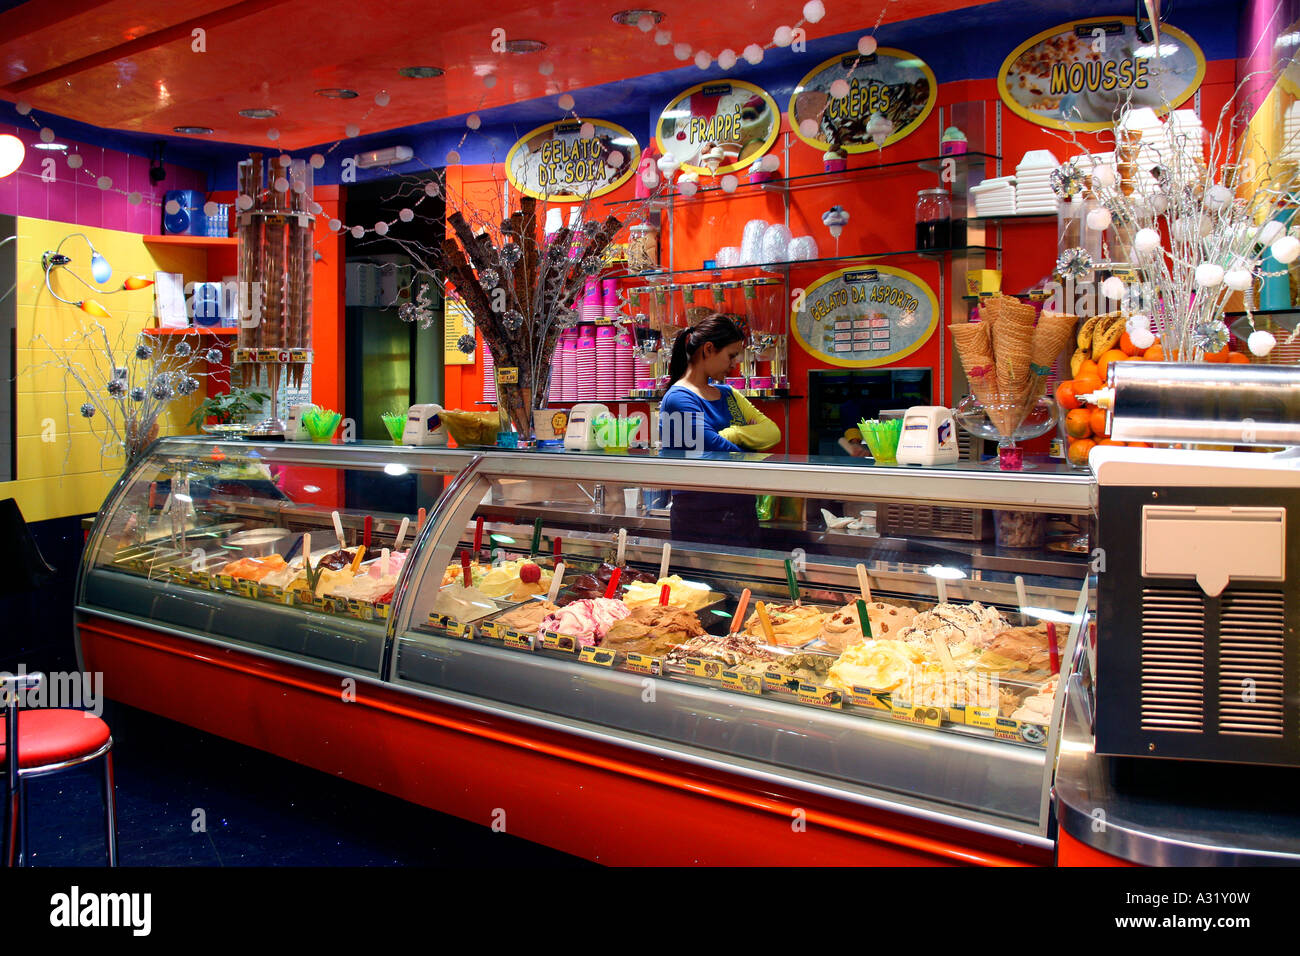 Ice Cream Parlour Interior Stock Photos Ice Cream Parlour Interior